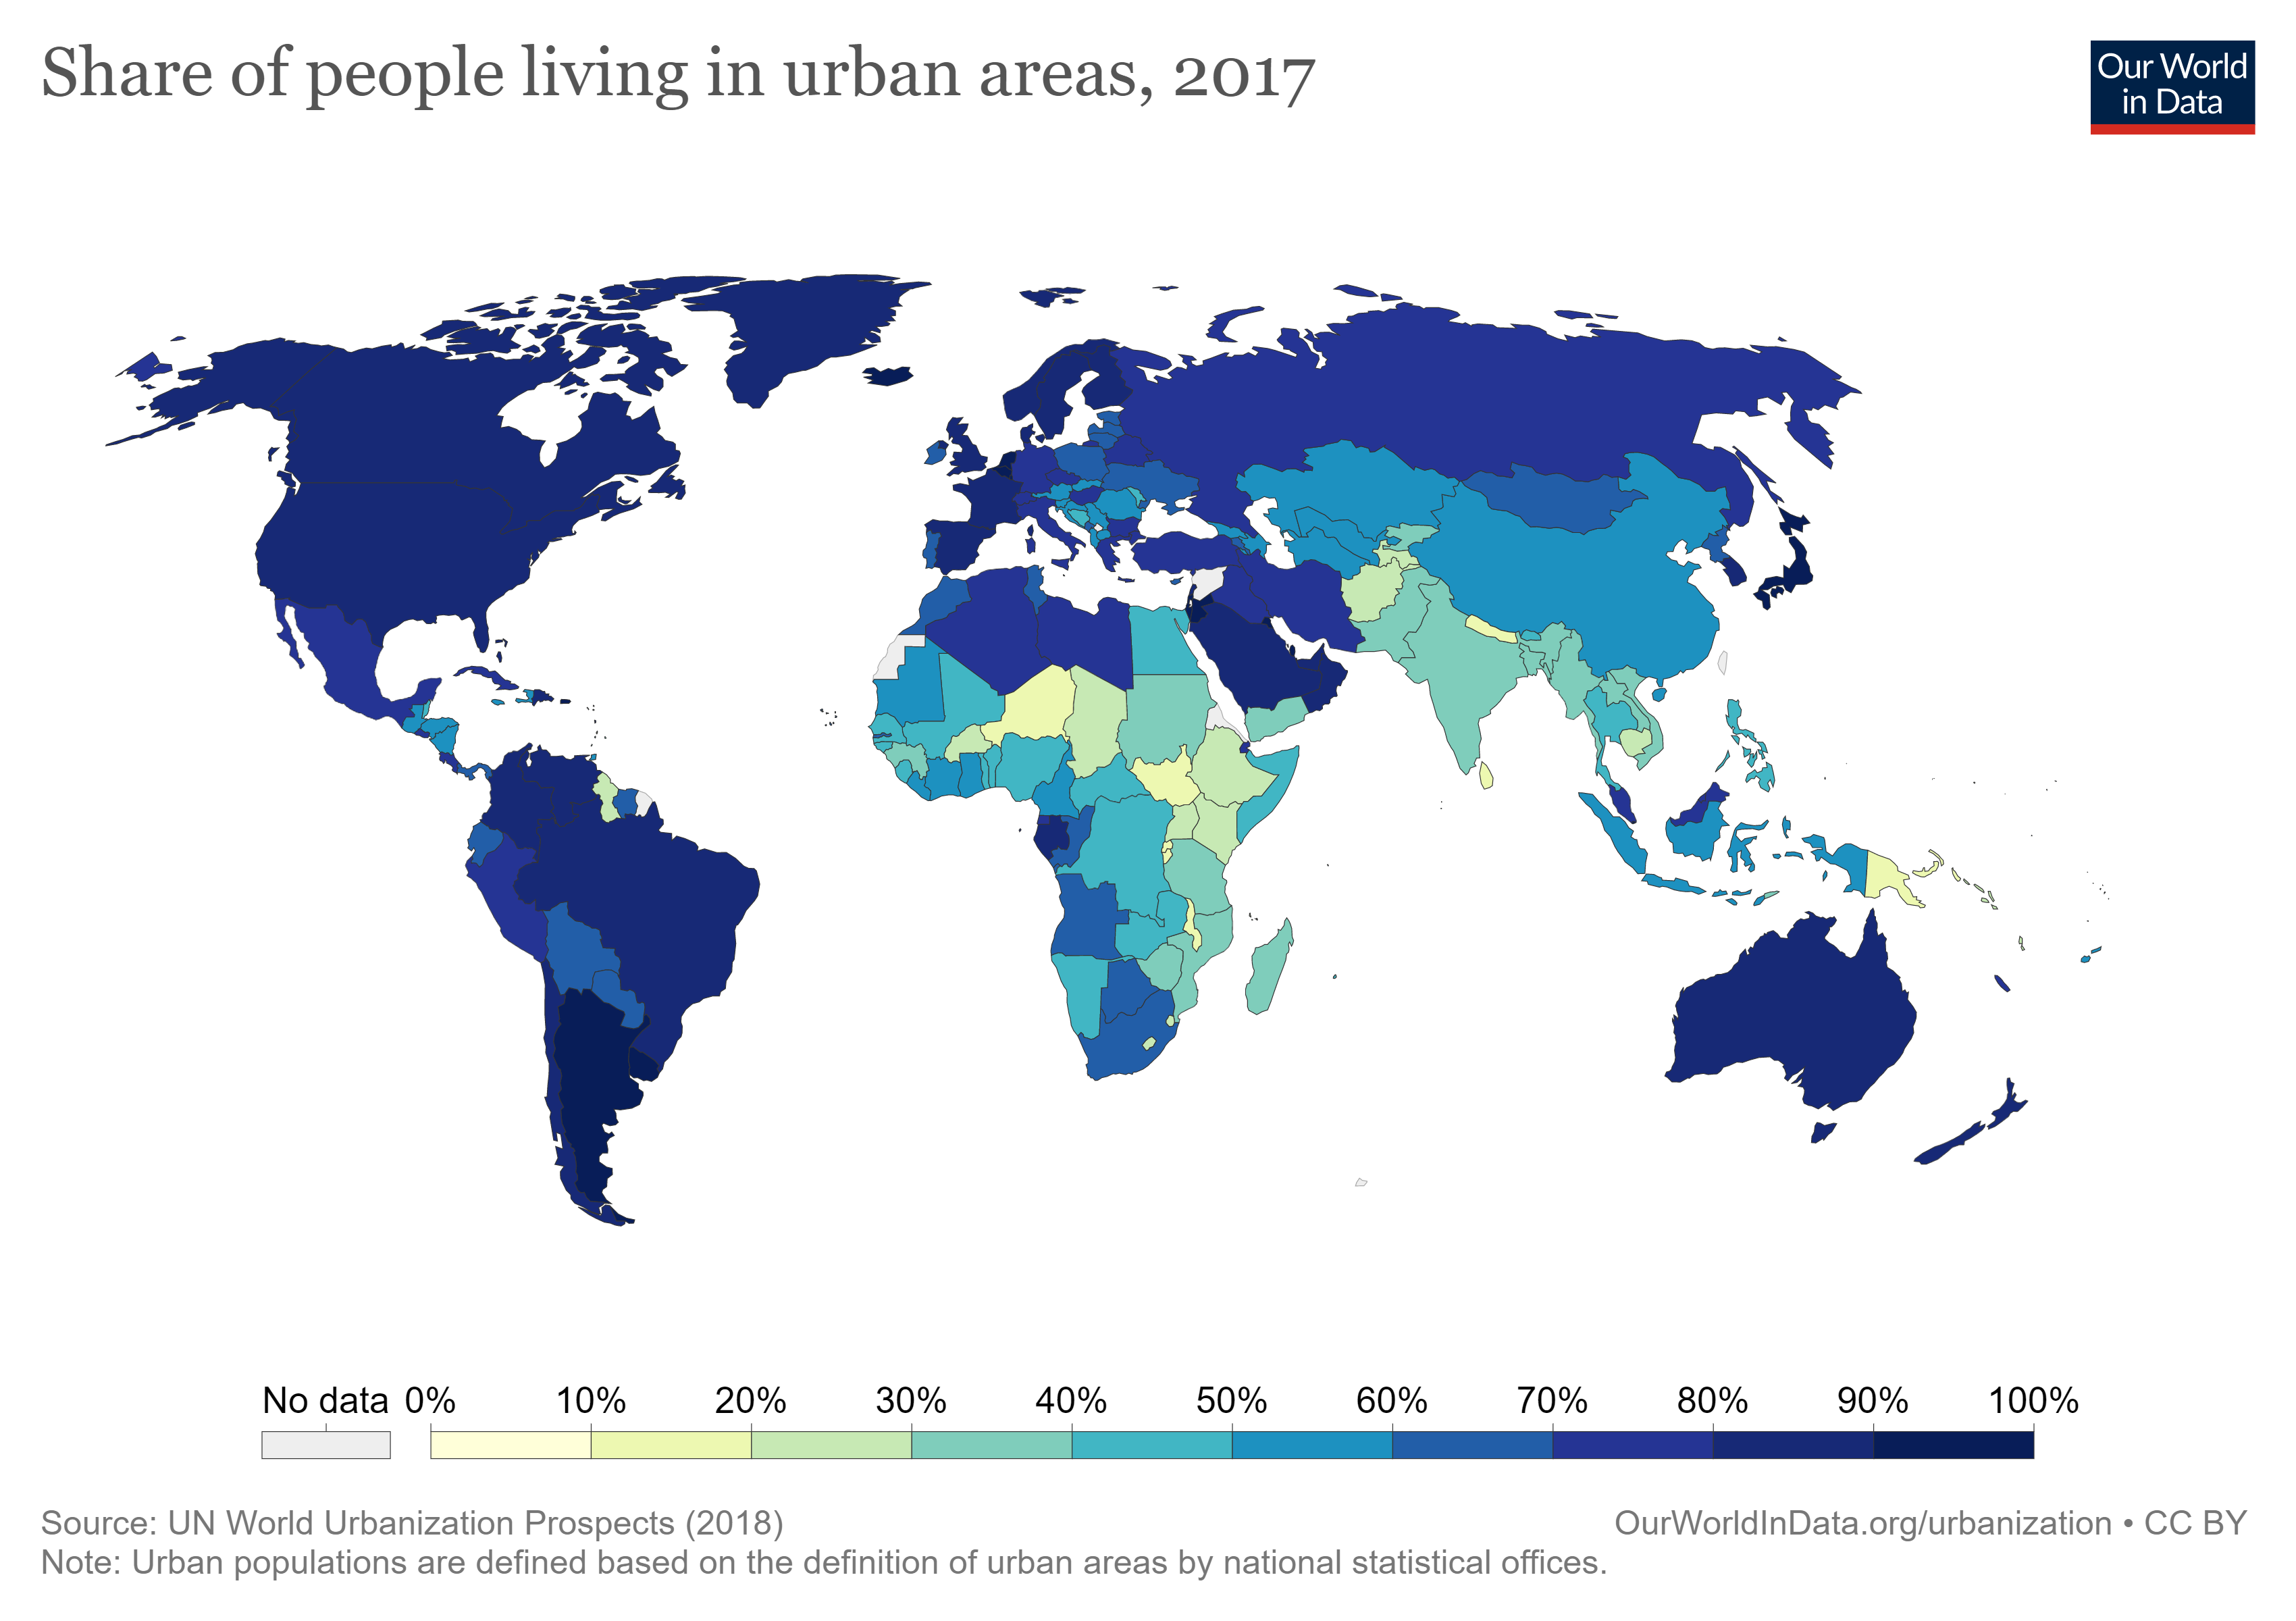 The share of the population that is urbanized across the world